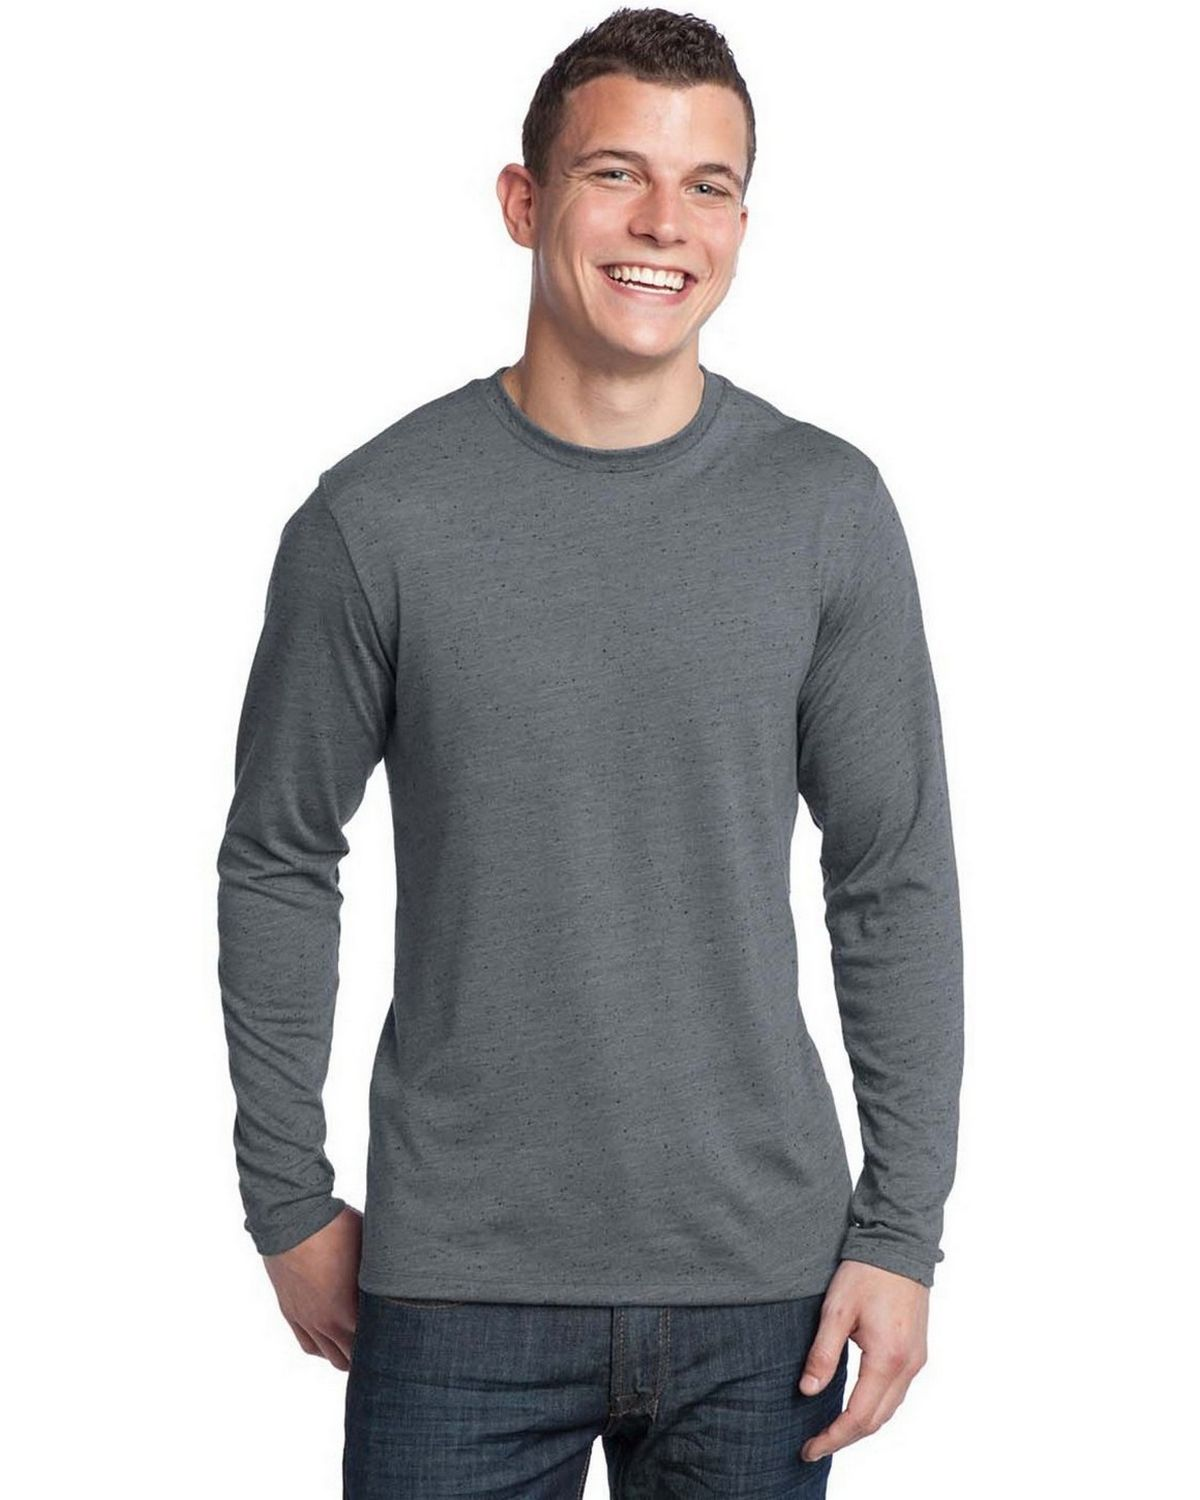 District DT171 Textured Long Sleeve Tee - Charcoal - XS DT171